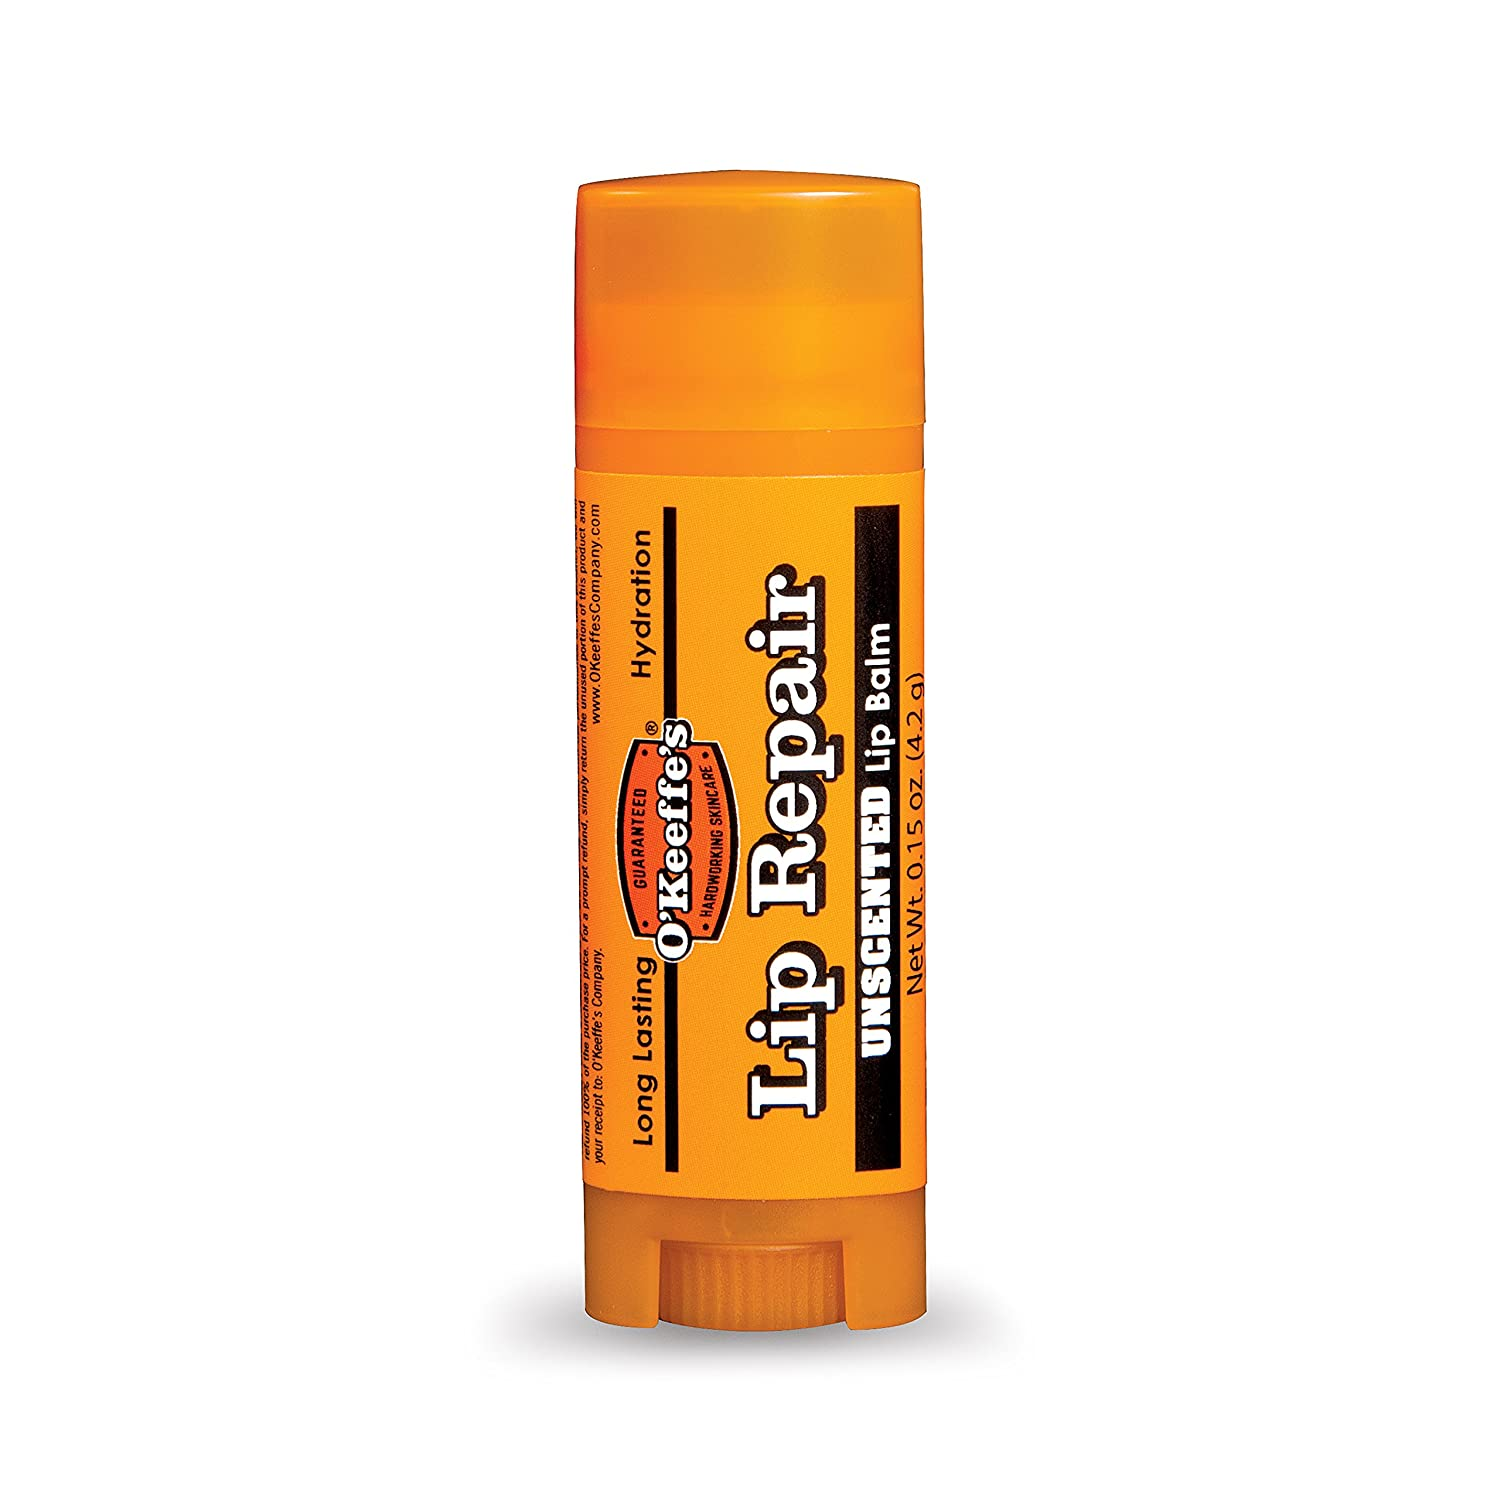 O'Keeffe's Lip Repair Stick Original 4.2g Gorilla Glue K0700108